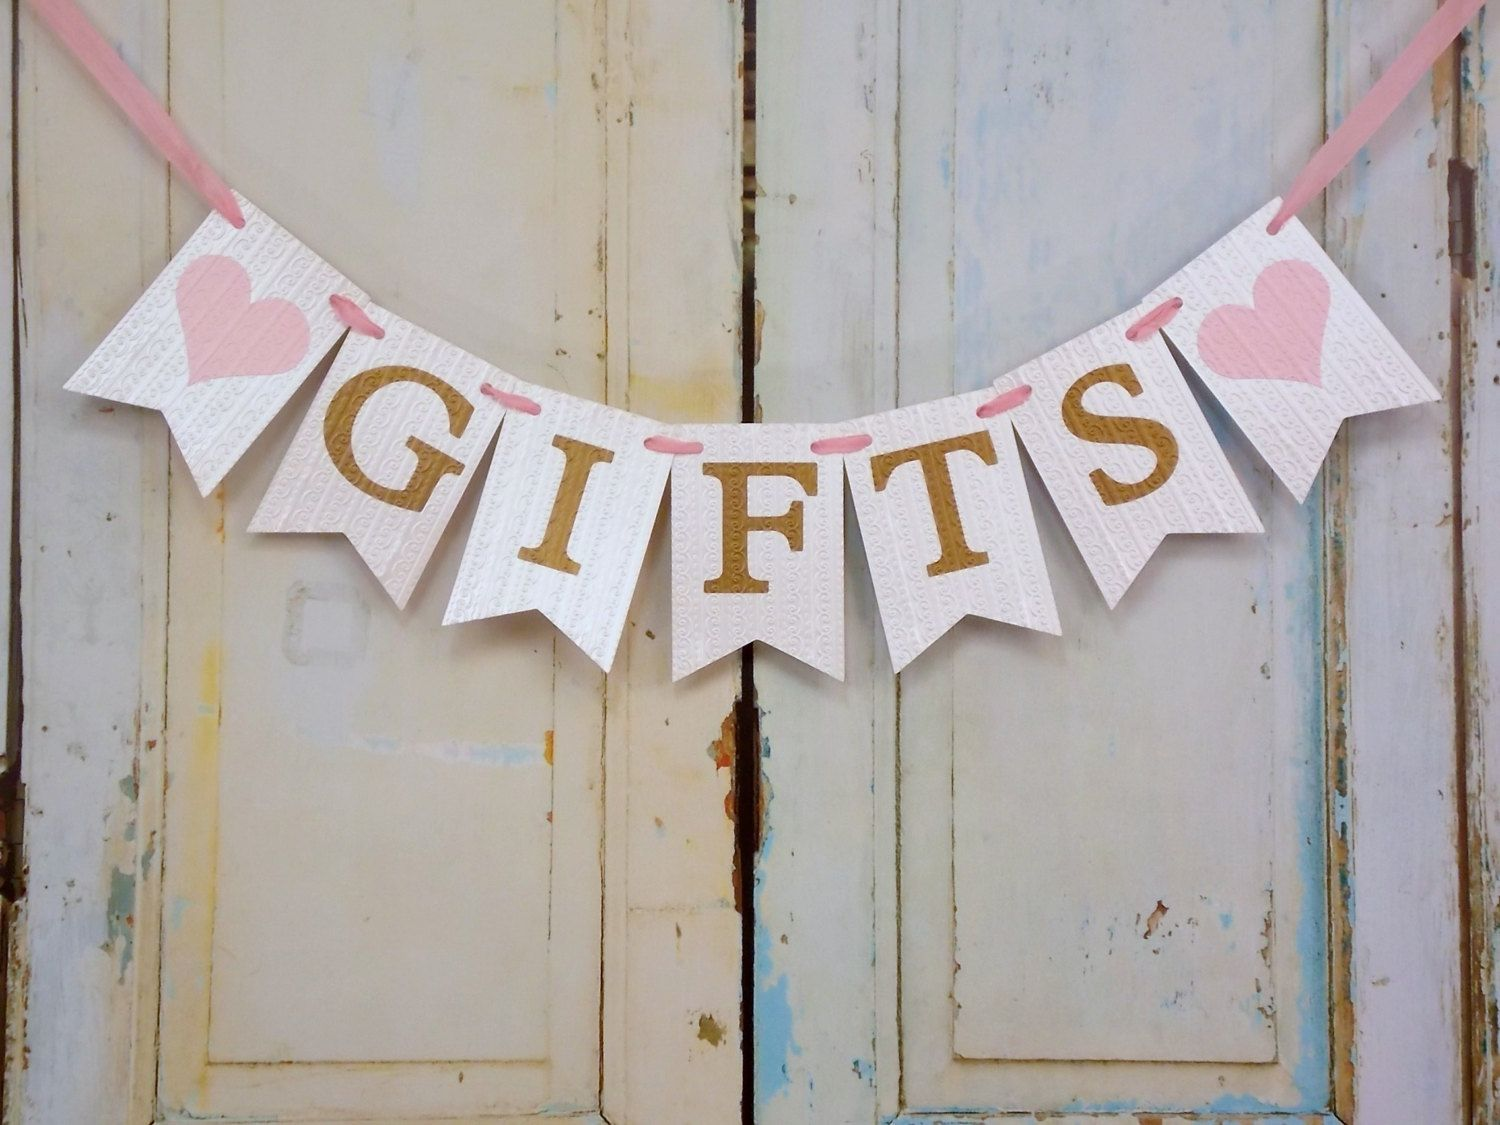 gifts to give for bridal shower games%0A Gifts Banner with Hearts  Cream Pink and Gold Banner  Wedding Shower  Banner  Baby